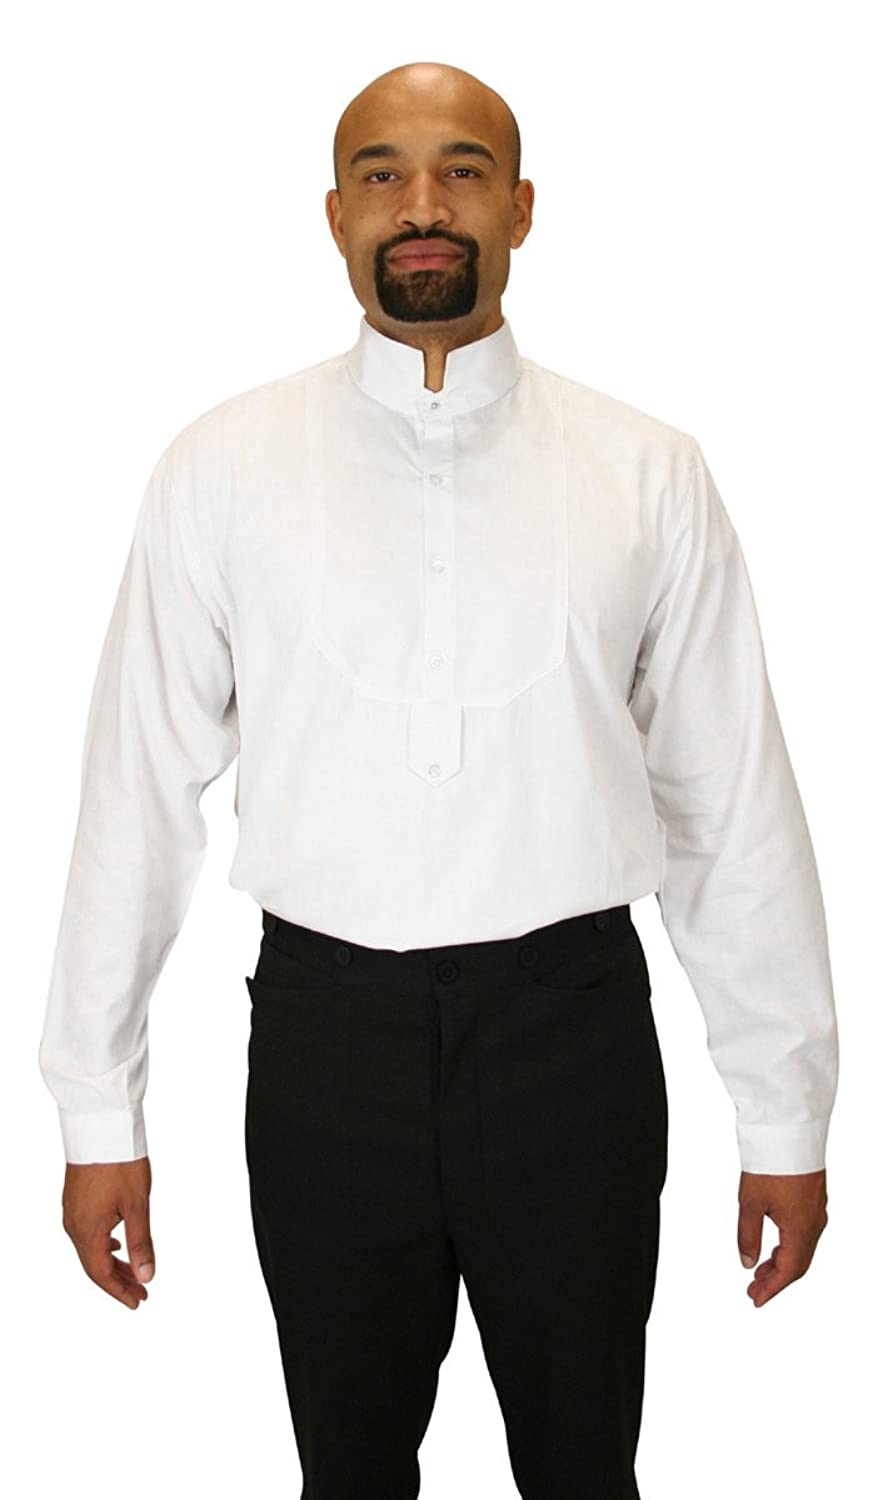 Victorian Men's Formal Wear, Wedding Tuxedo Historical Emporium Mens Victorian Collar Dress Shirt $59.95 AT vintagedancer.com